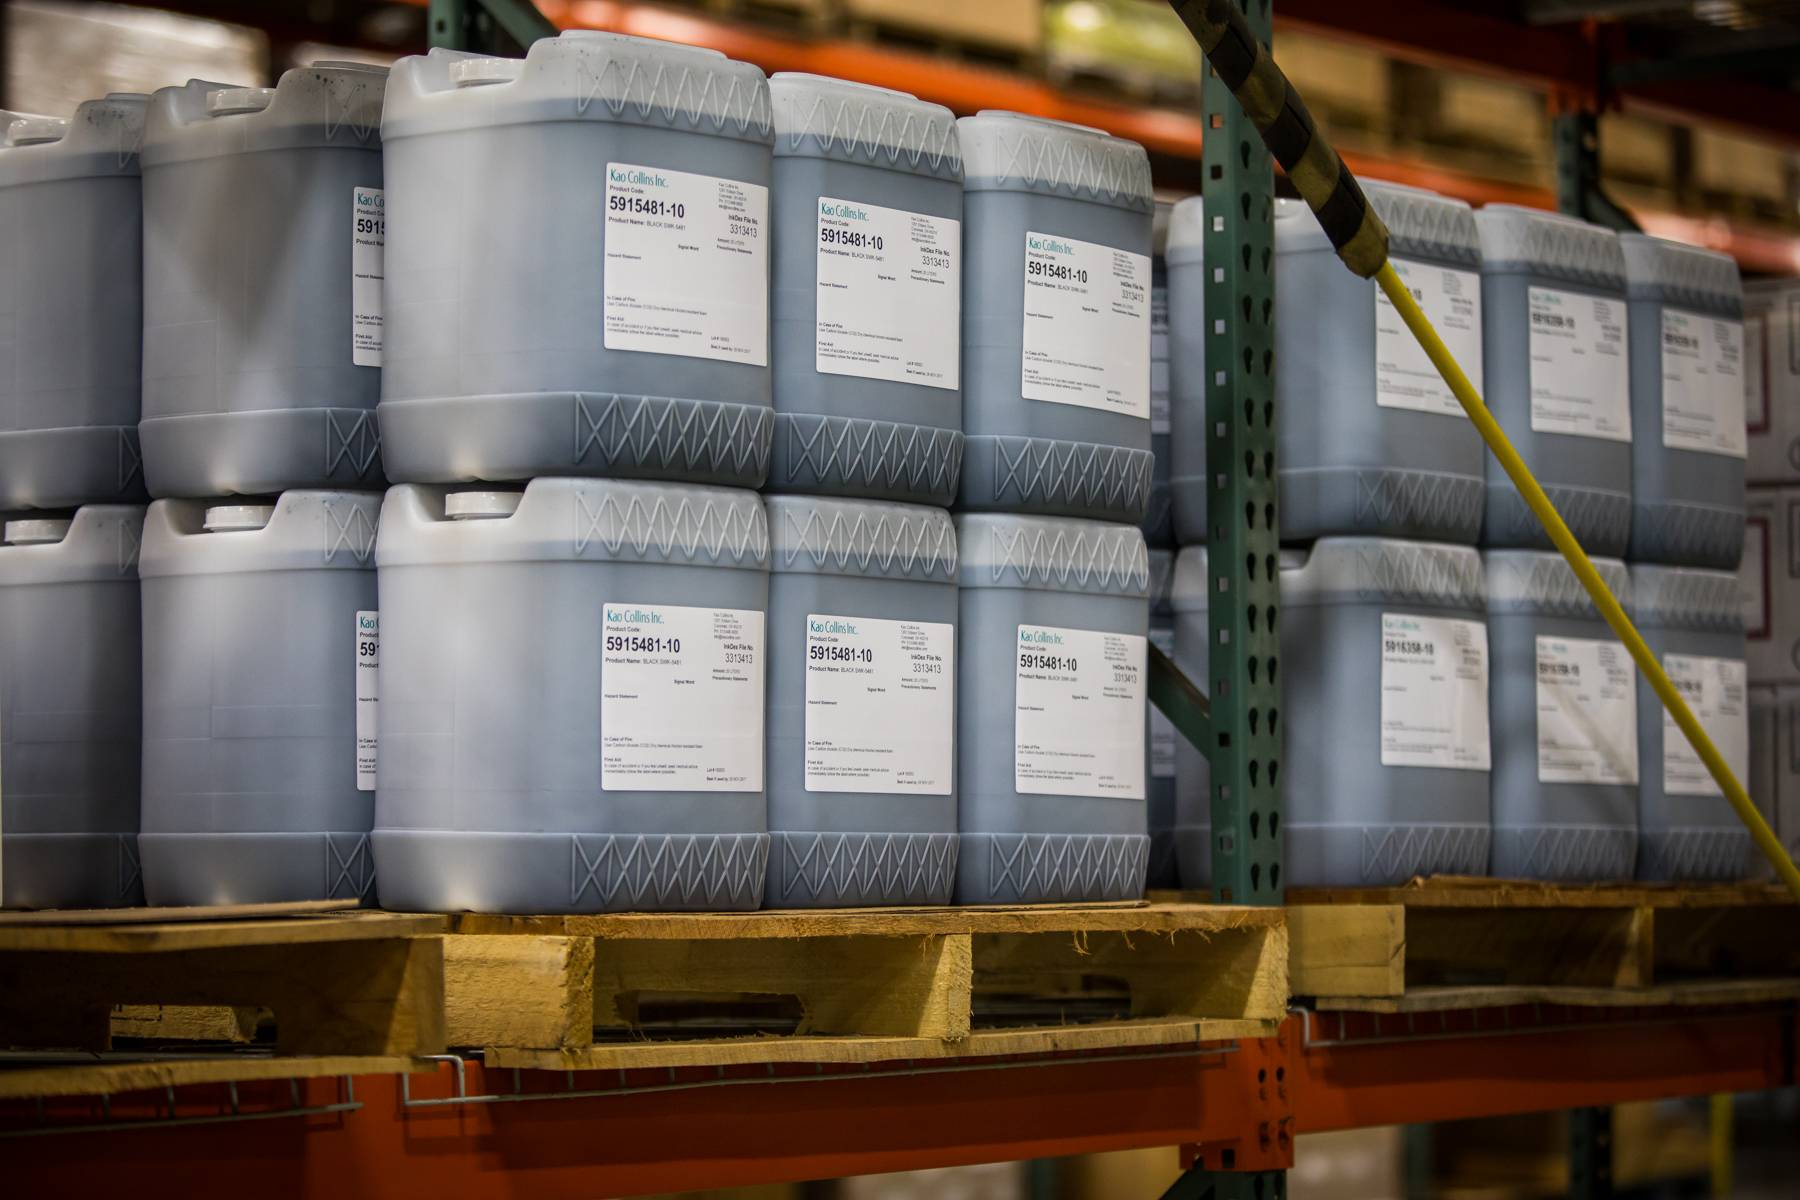 inkjet inks can be manufactured to meet required performance characteristics